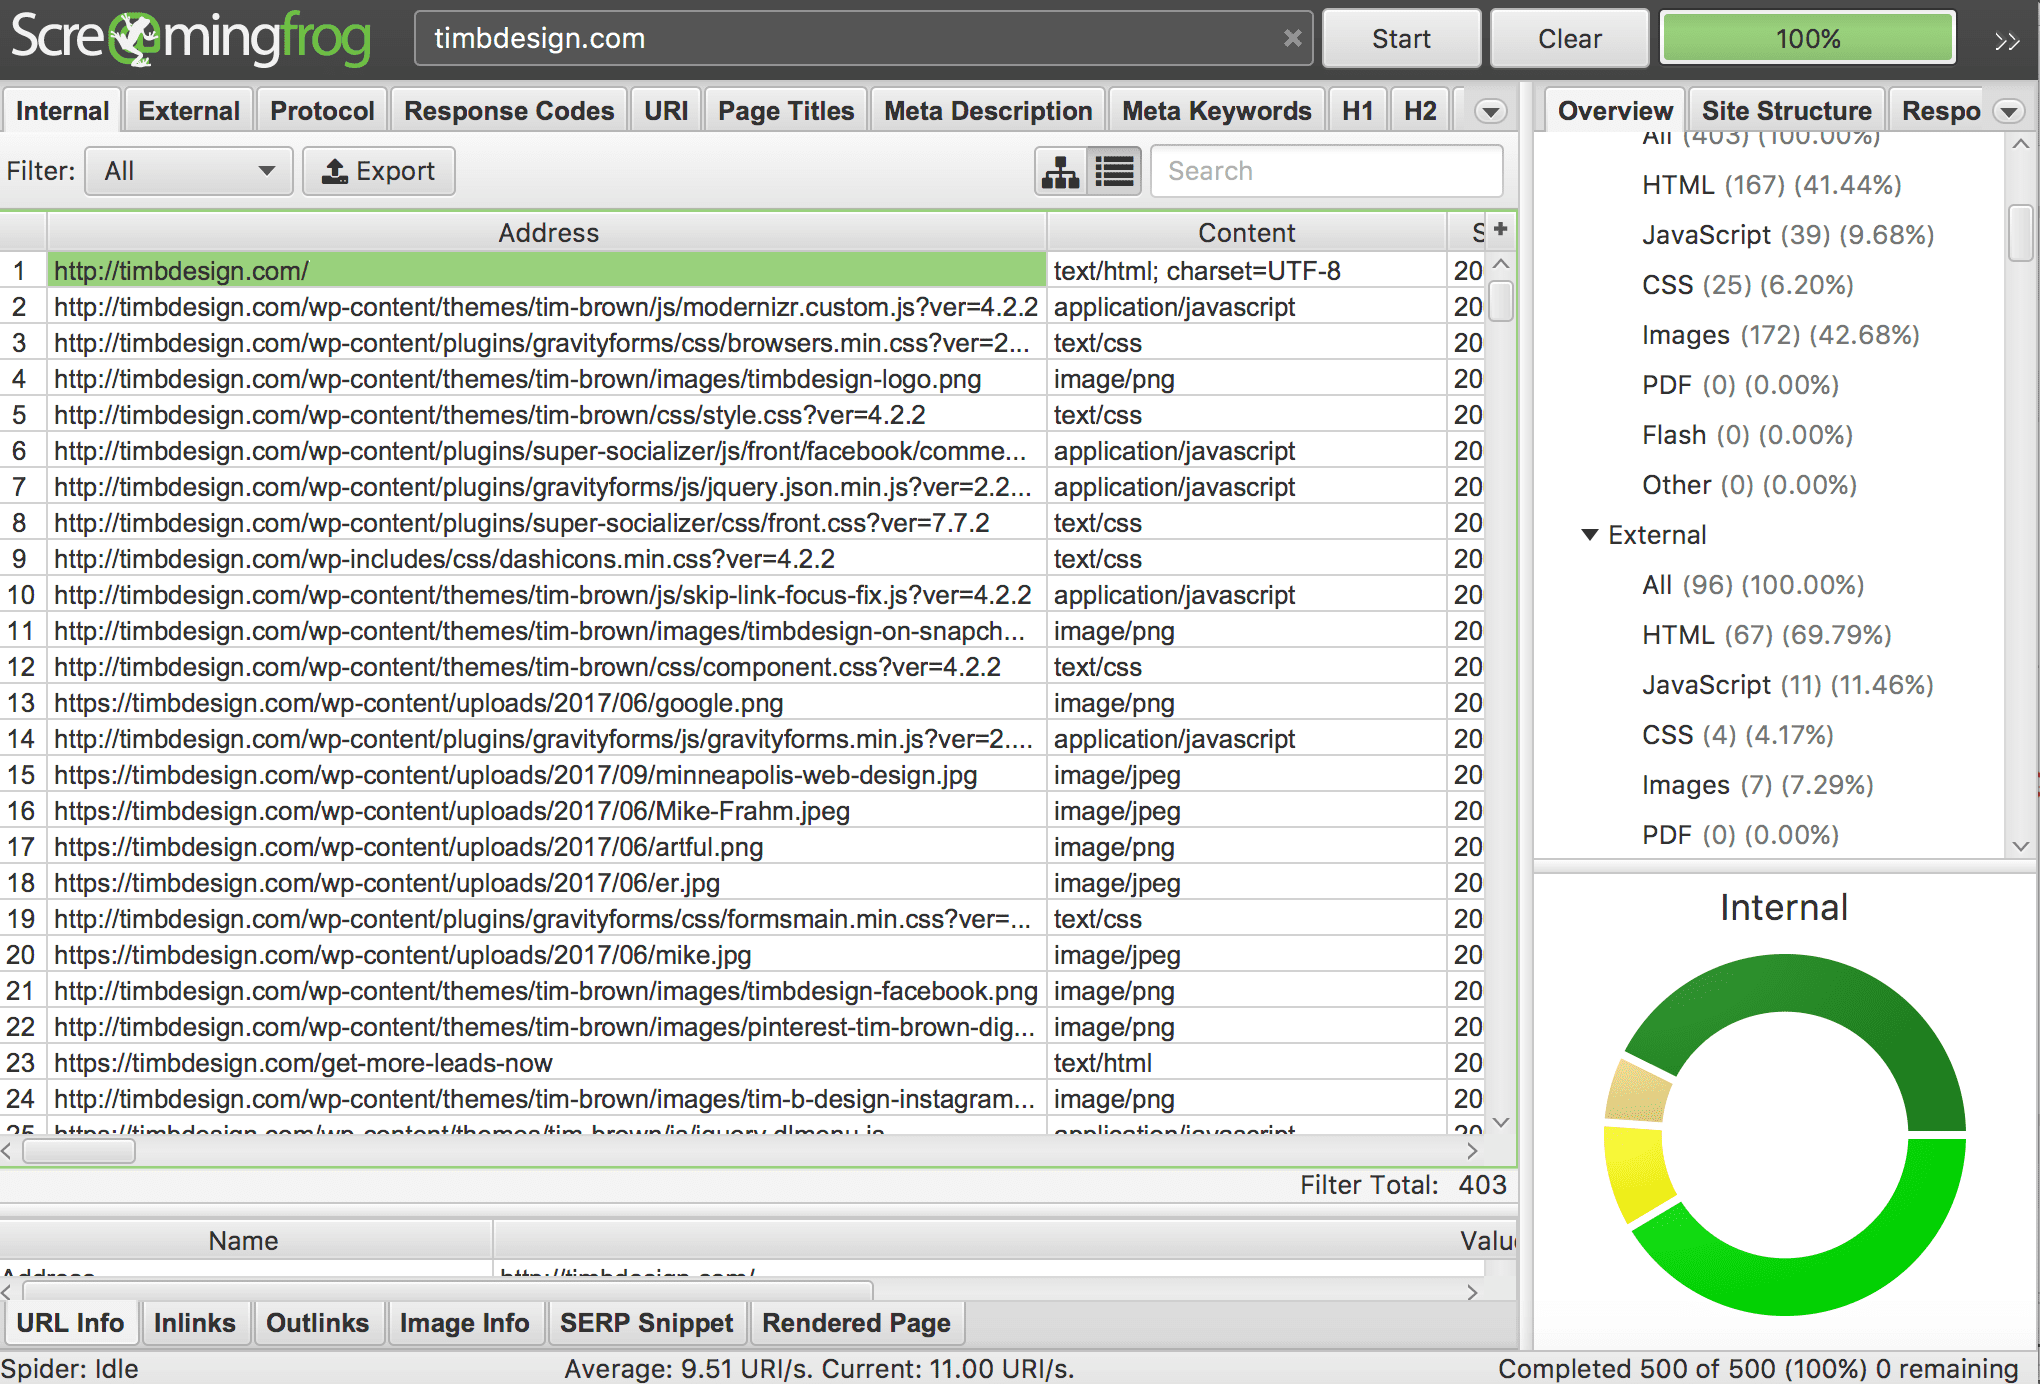 ScreamingFrog Spider